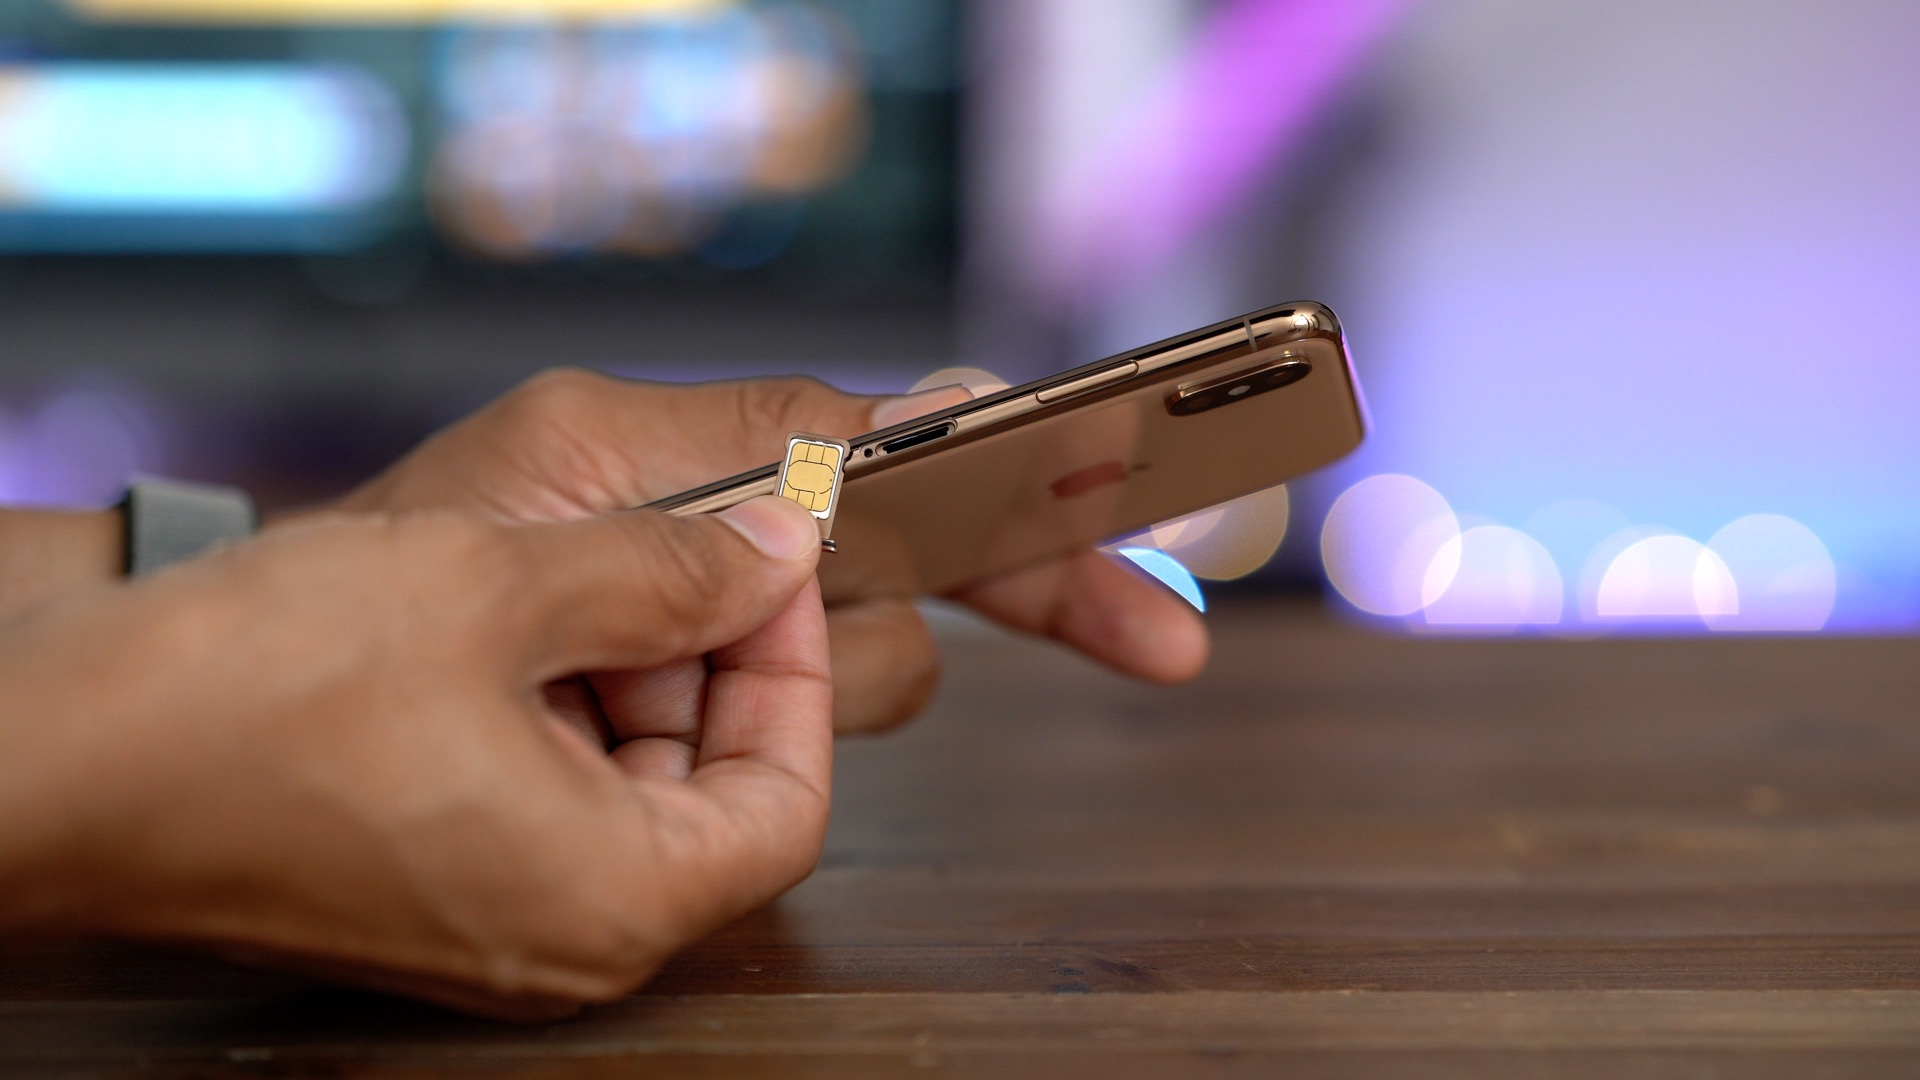 AT&T becomes first major US carrier to support eSIM functionality on iPhone XS & XR